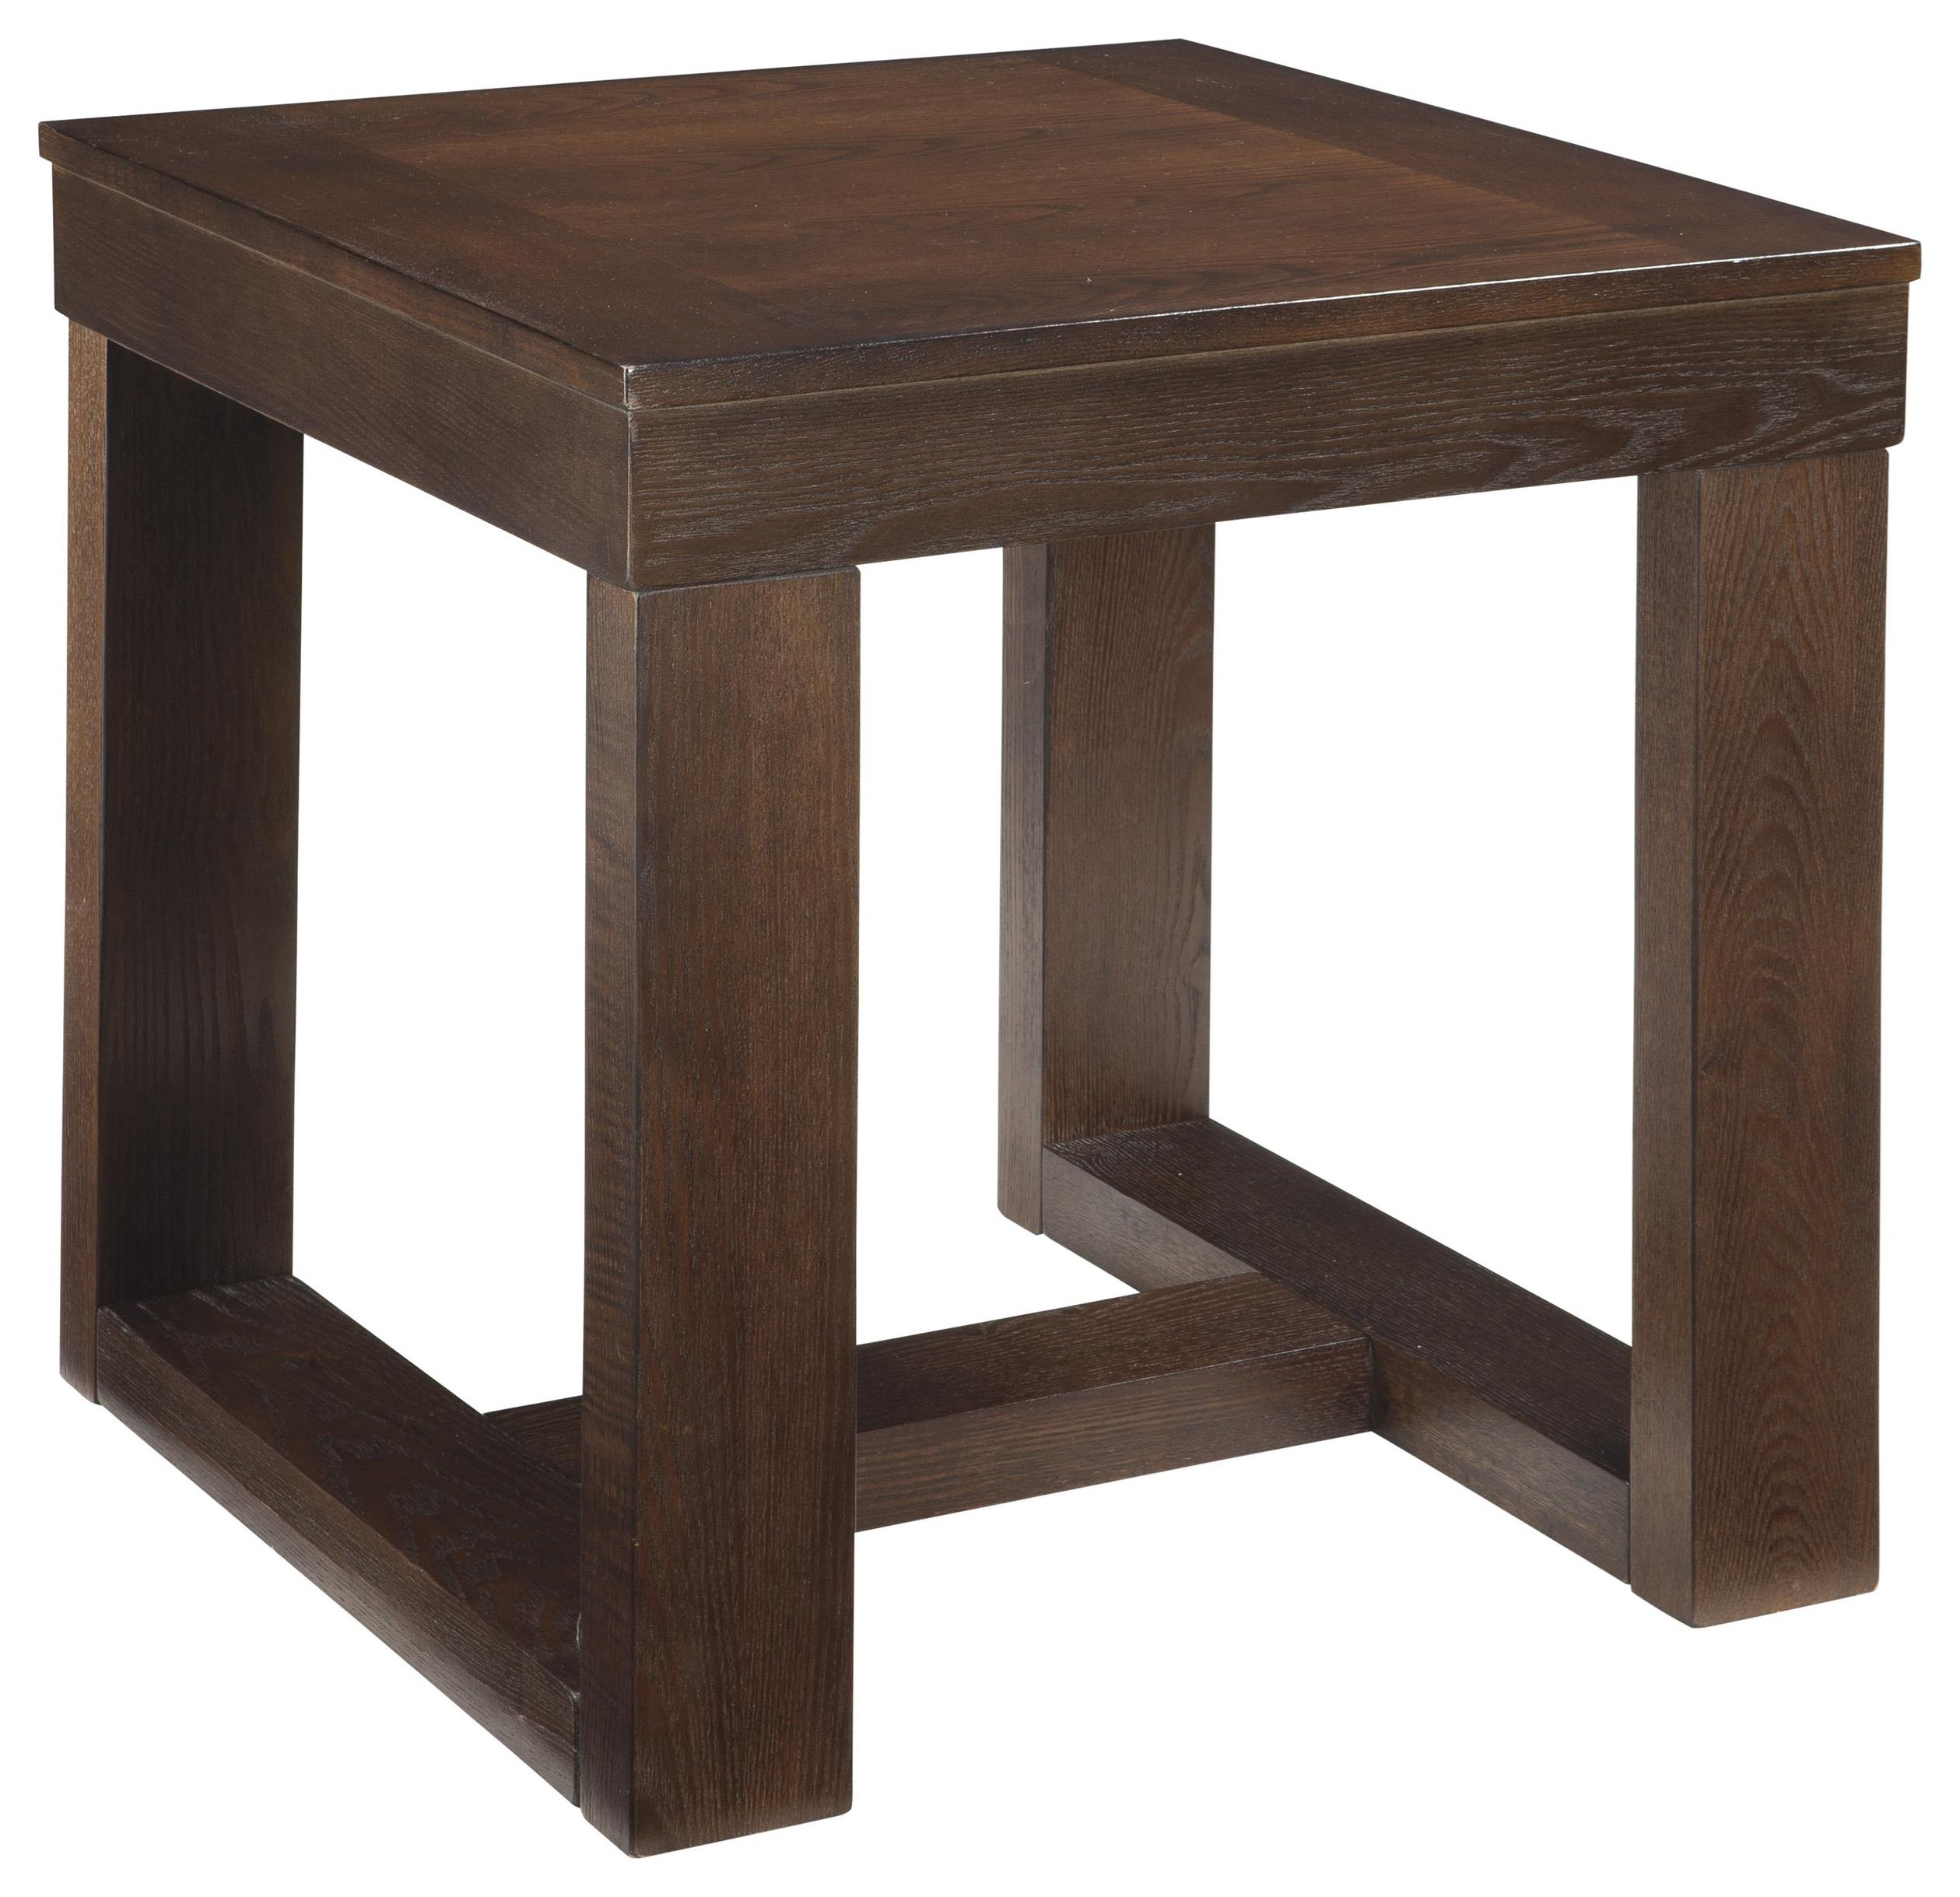 Watson End Table by Signature Design by Ashley at HomeWorld Furniture